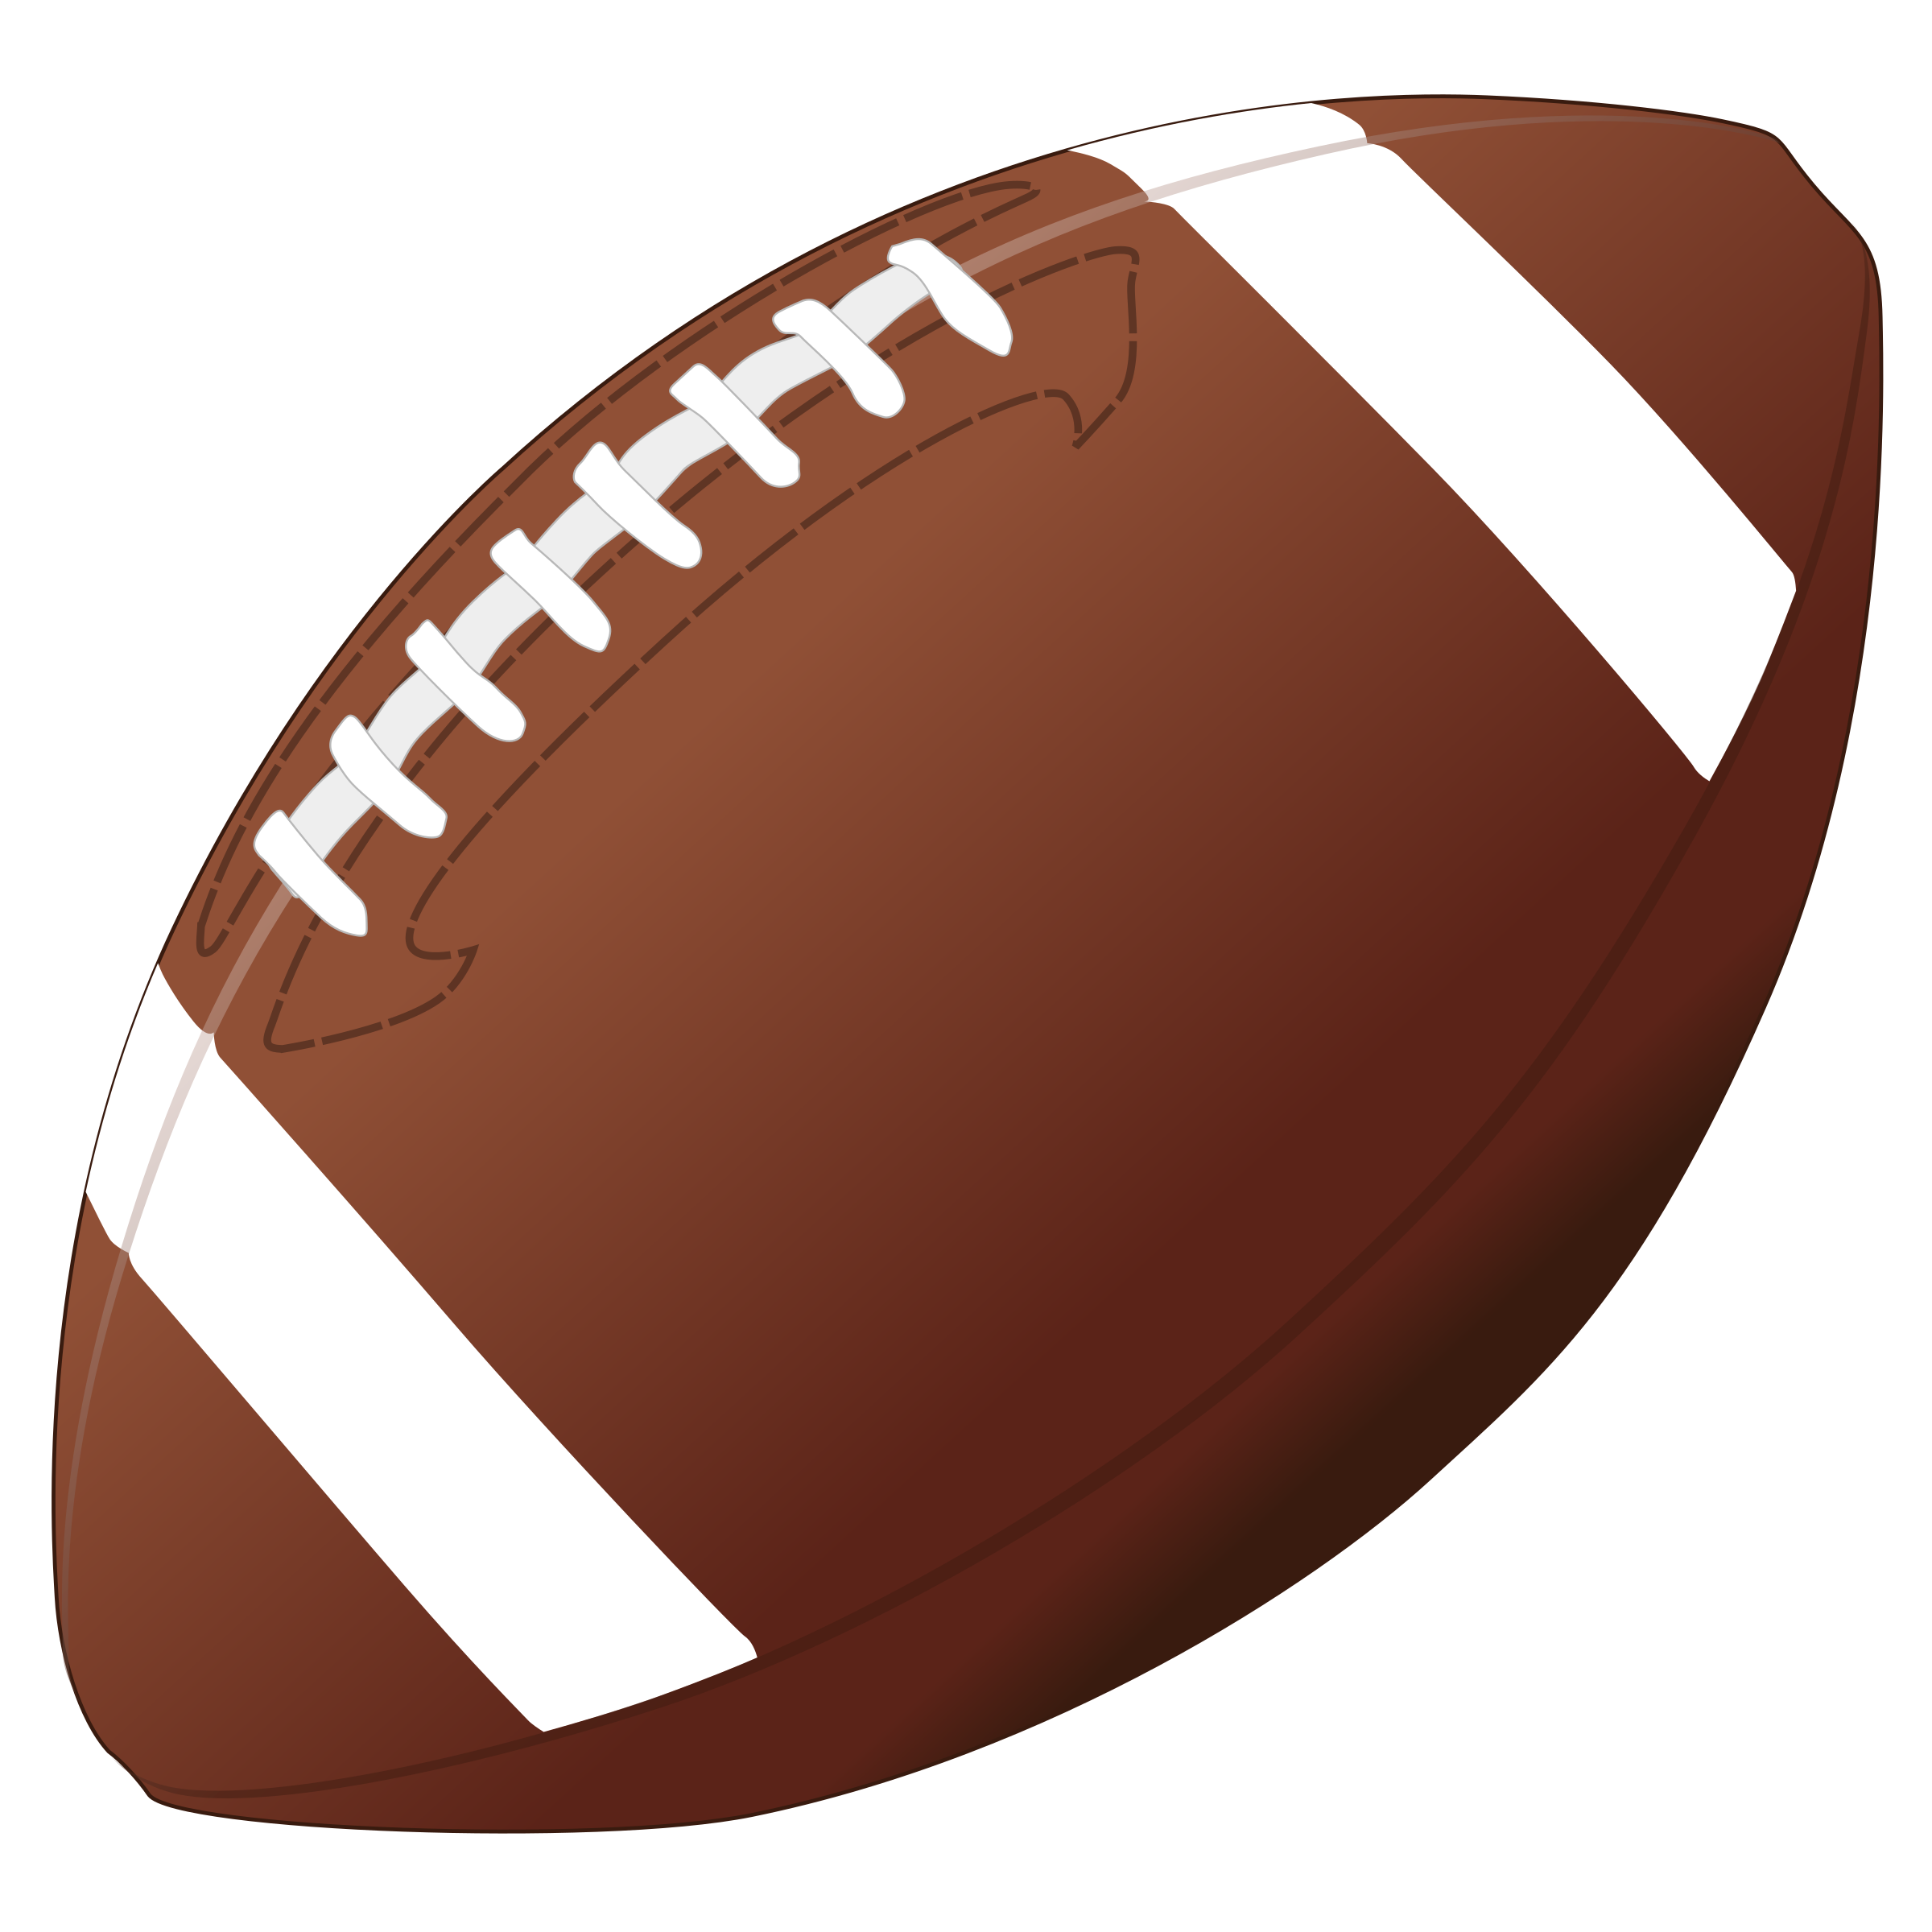 Nfl clip ball. Foot banner royalty